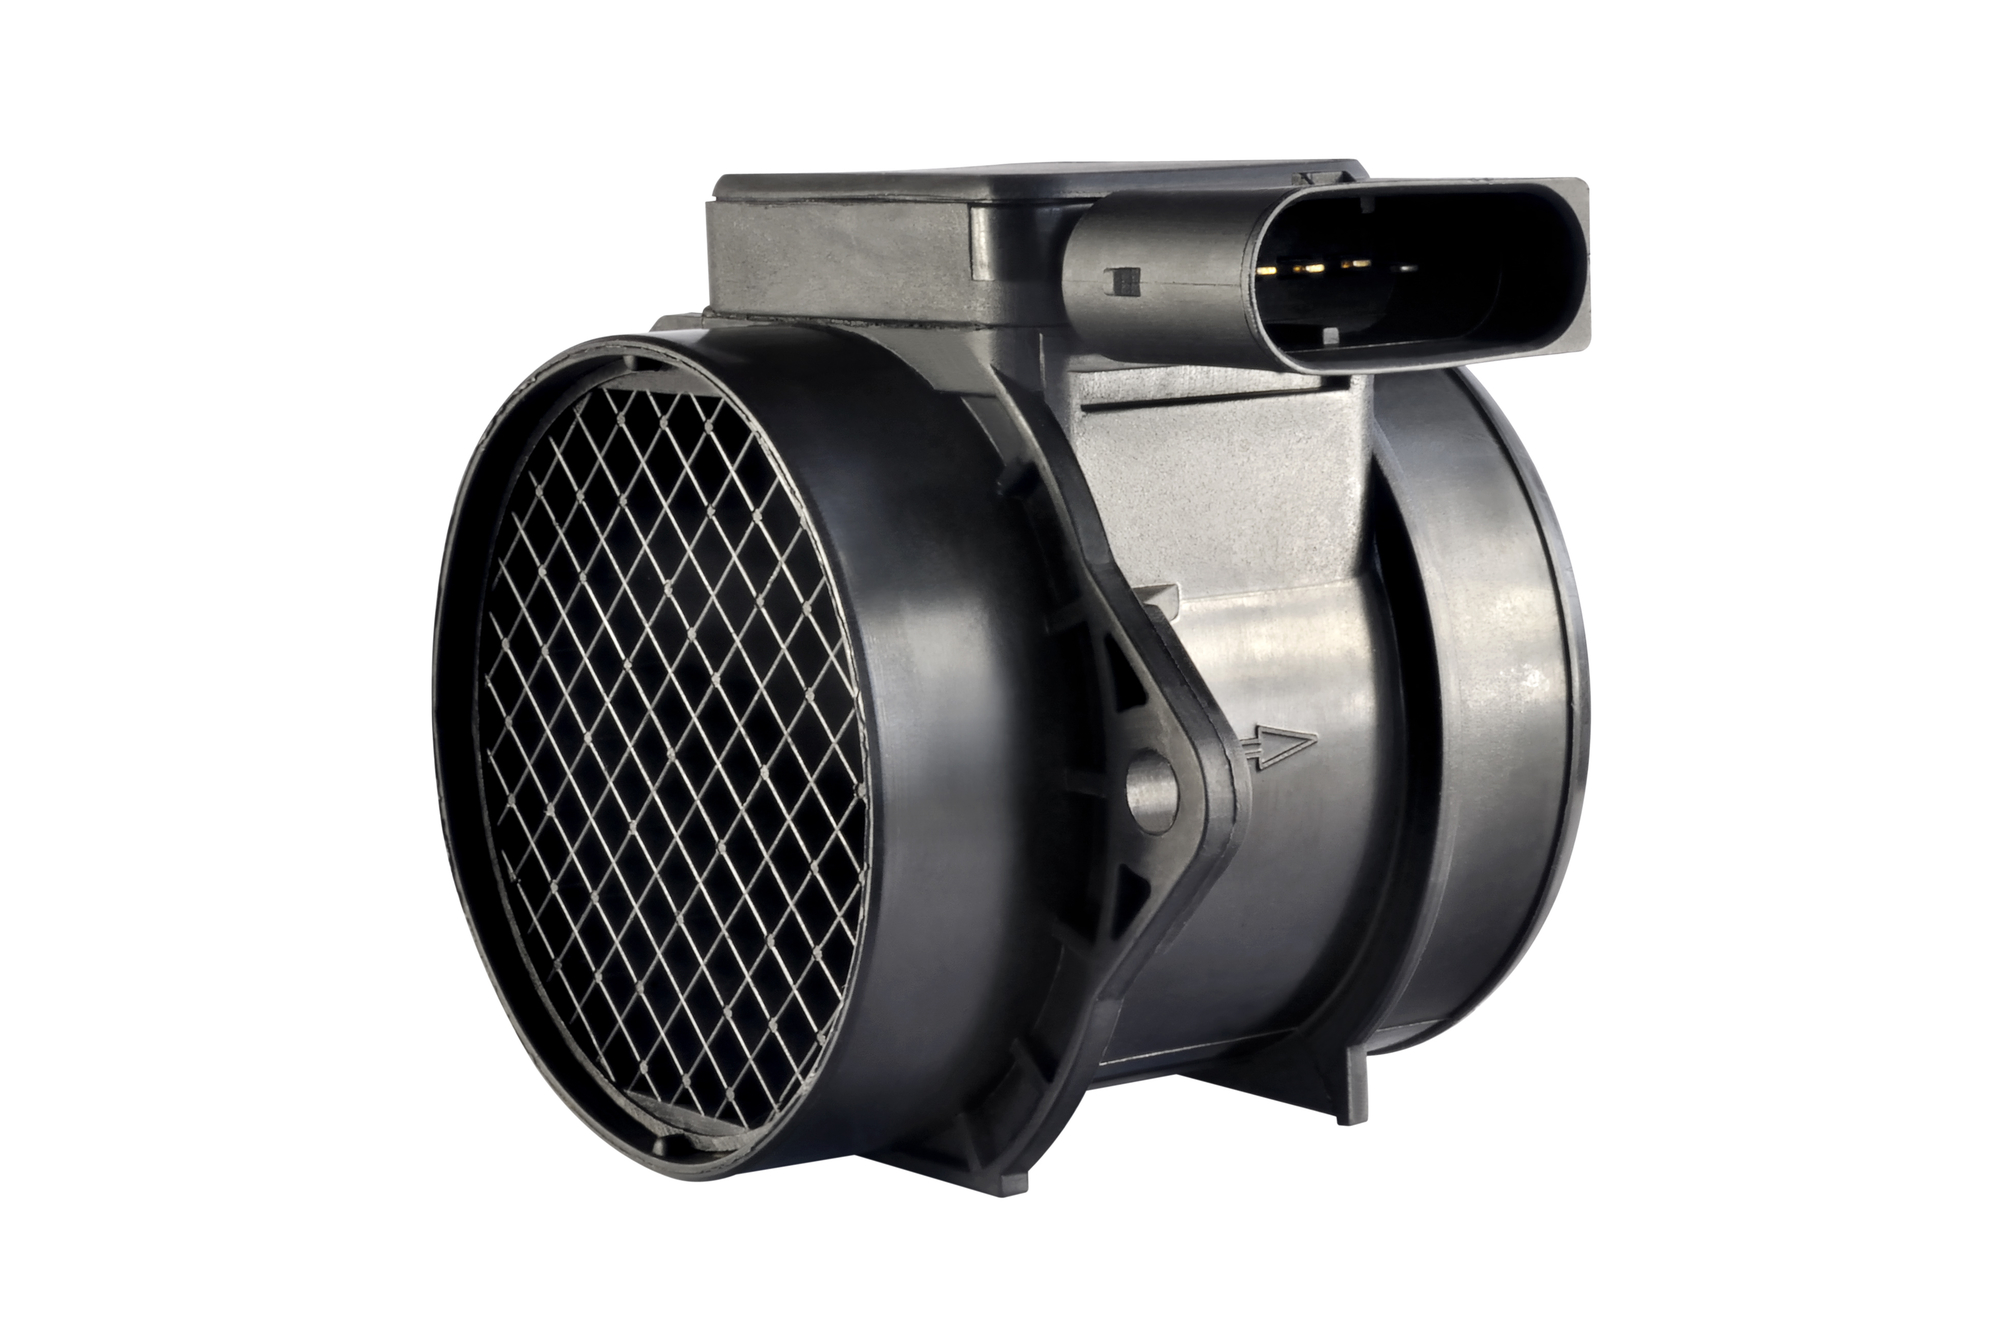 Bad Mass Air Flow Sensor? (7 Symptoms with Fixes) - The Motor Guy